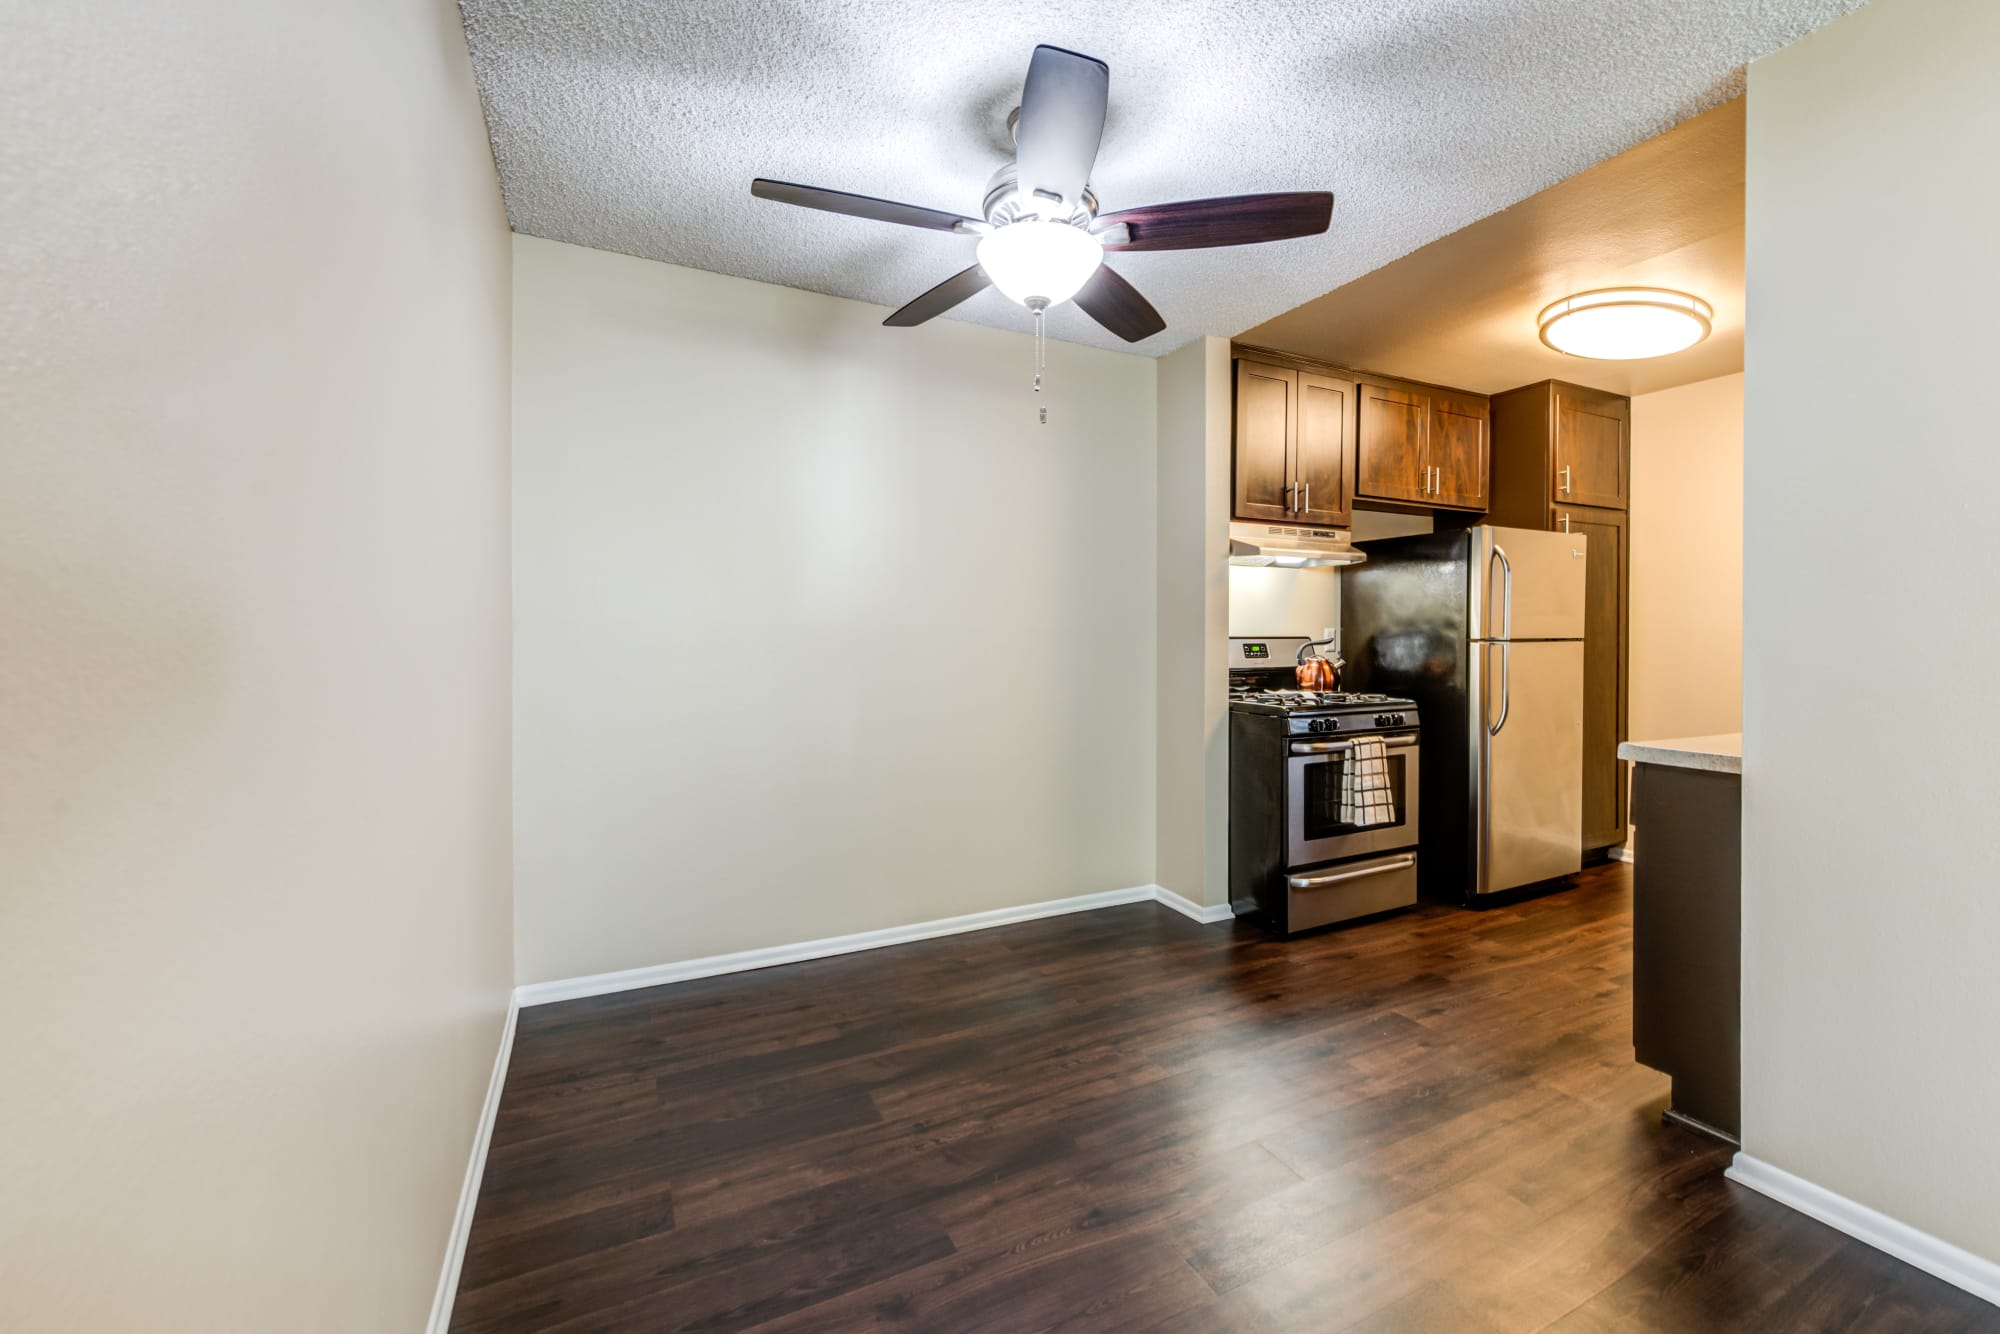 Living Room And Kitchen With Hardwood Floors At Kendallwood Apartments